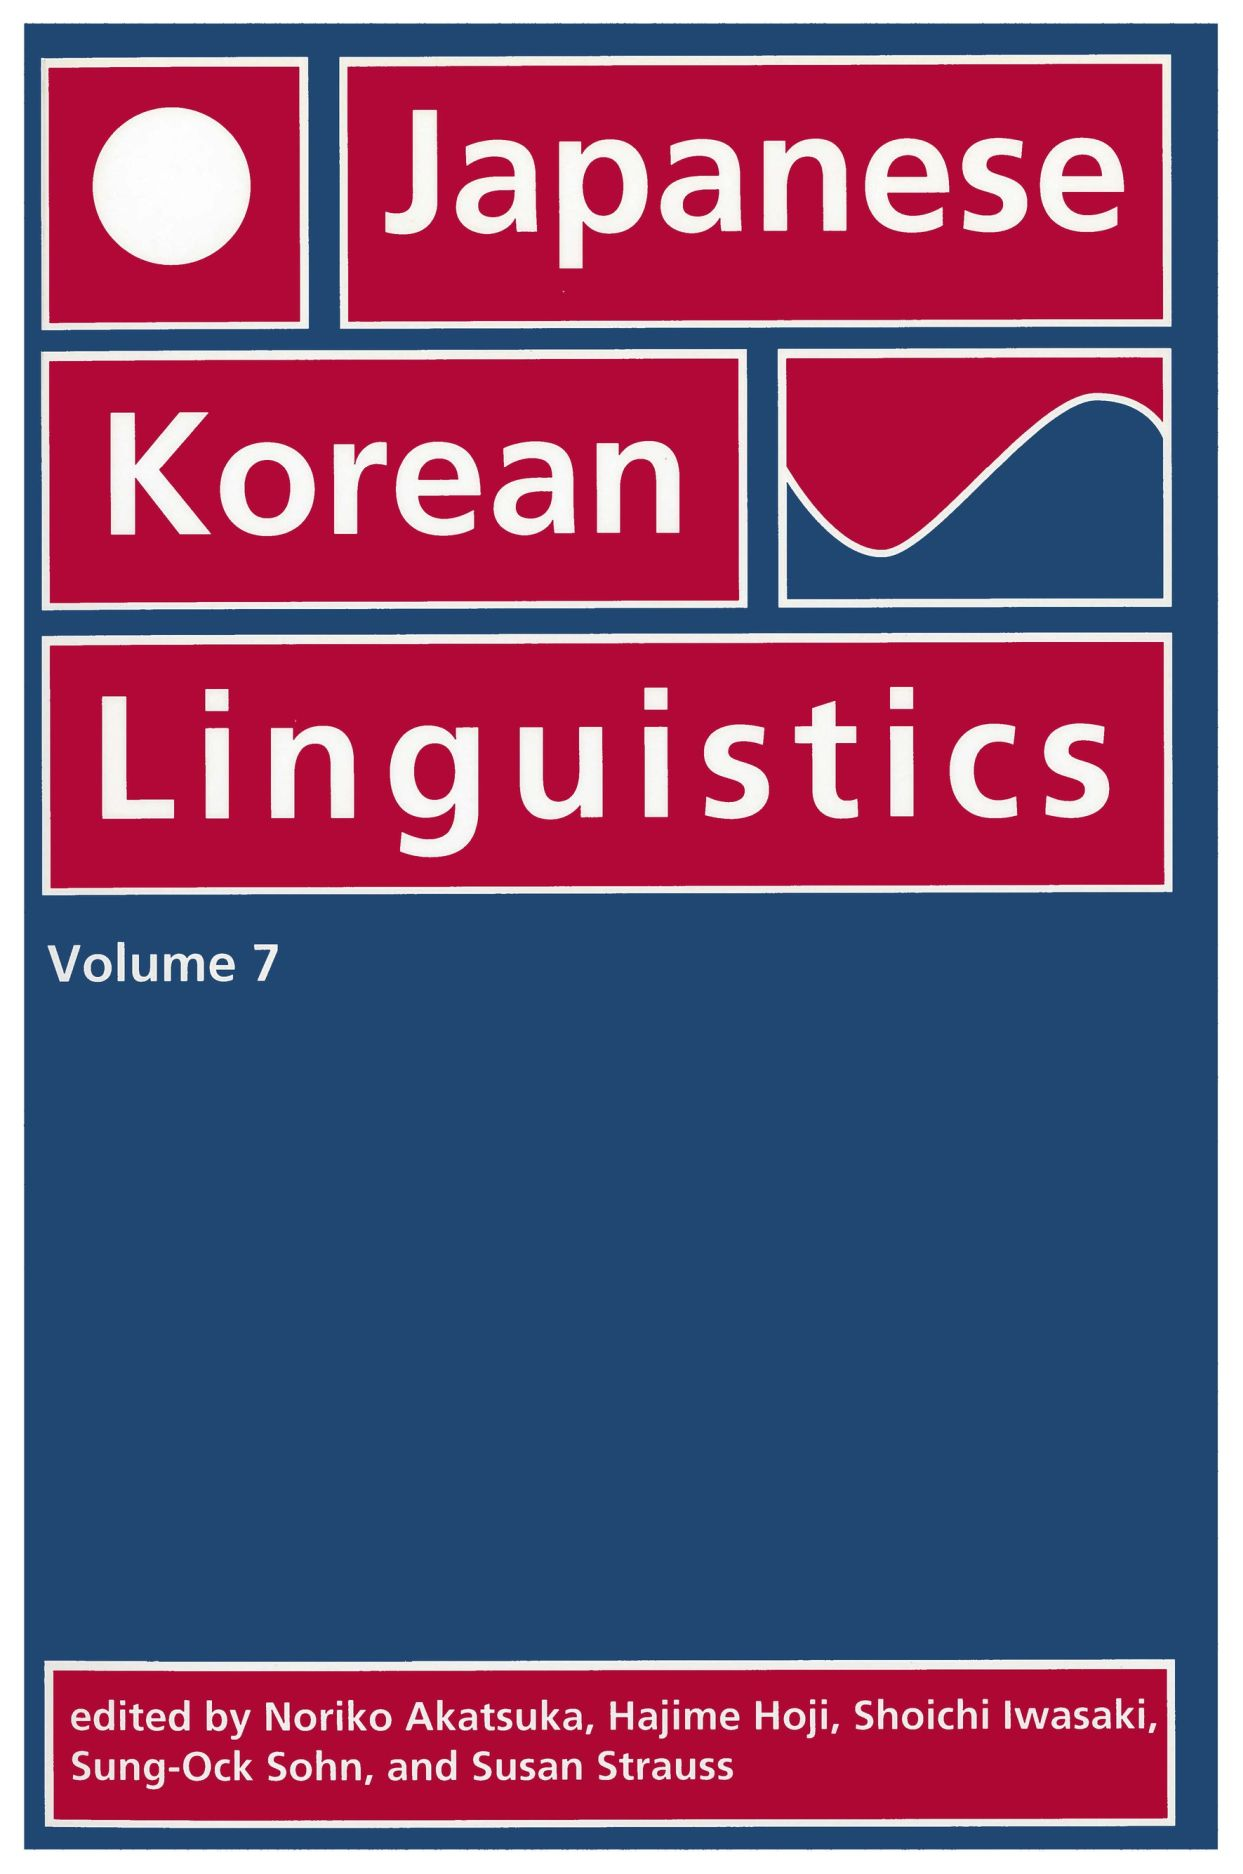 Japanese/Korean Linguistics, Volume 7